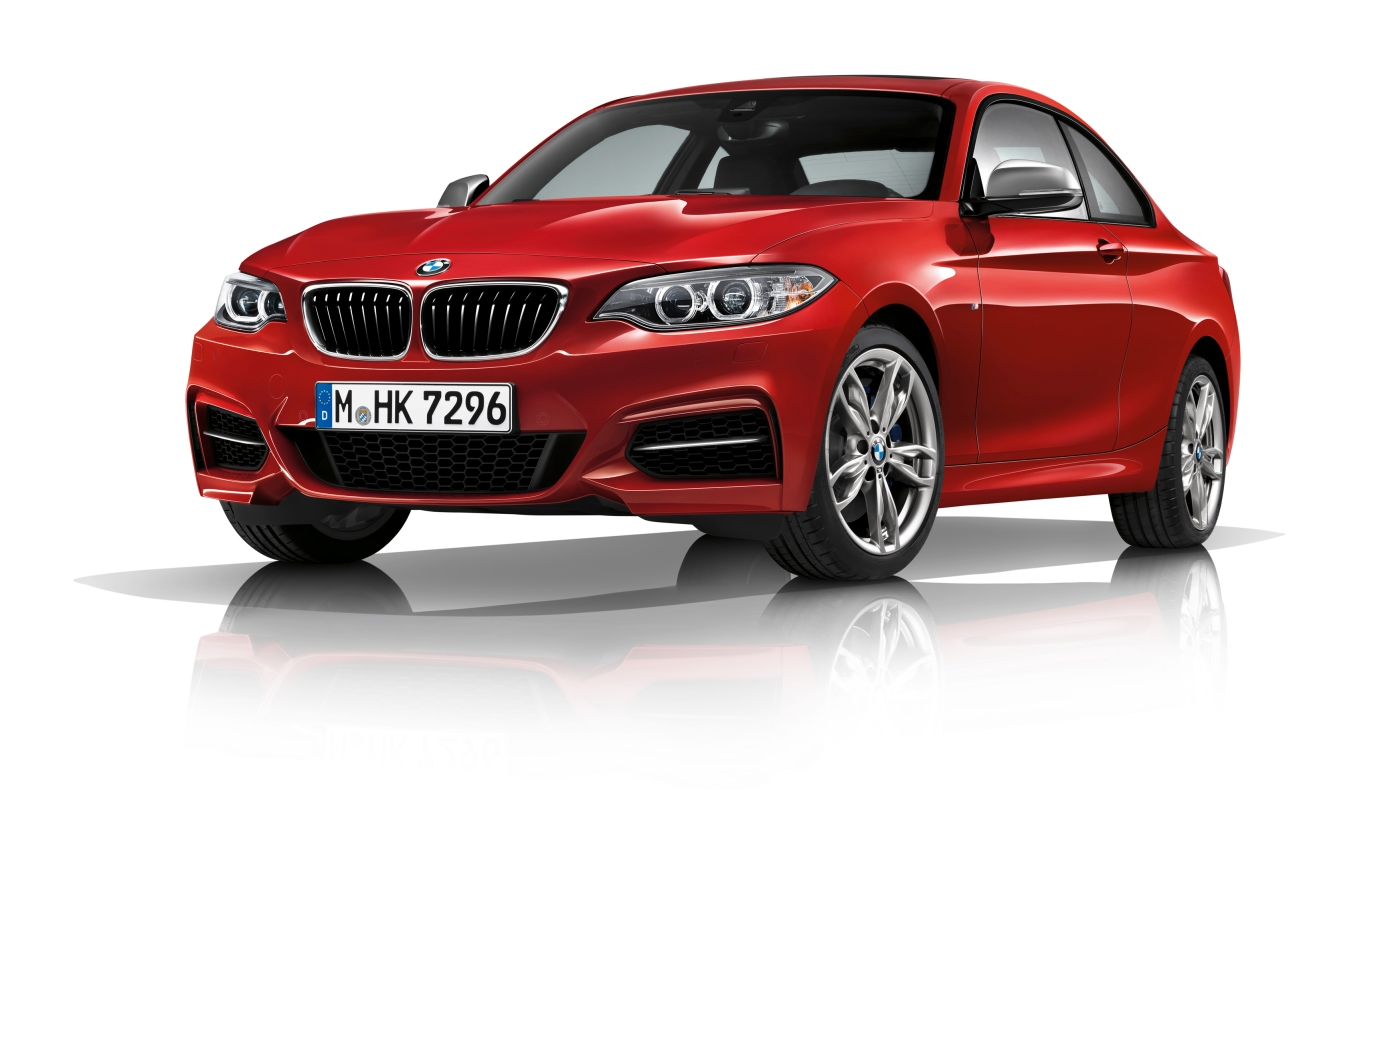 2018 Bmw 230i Xdrive Coupe A Driveways Review The Review Garage